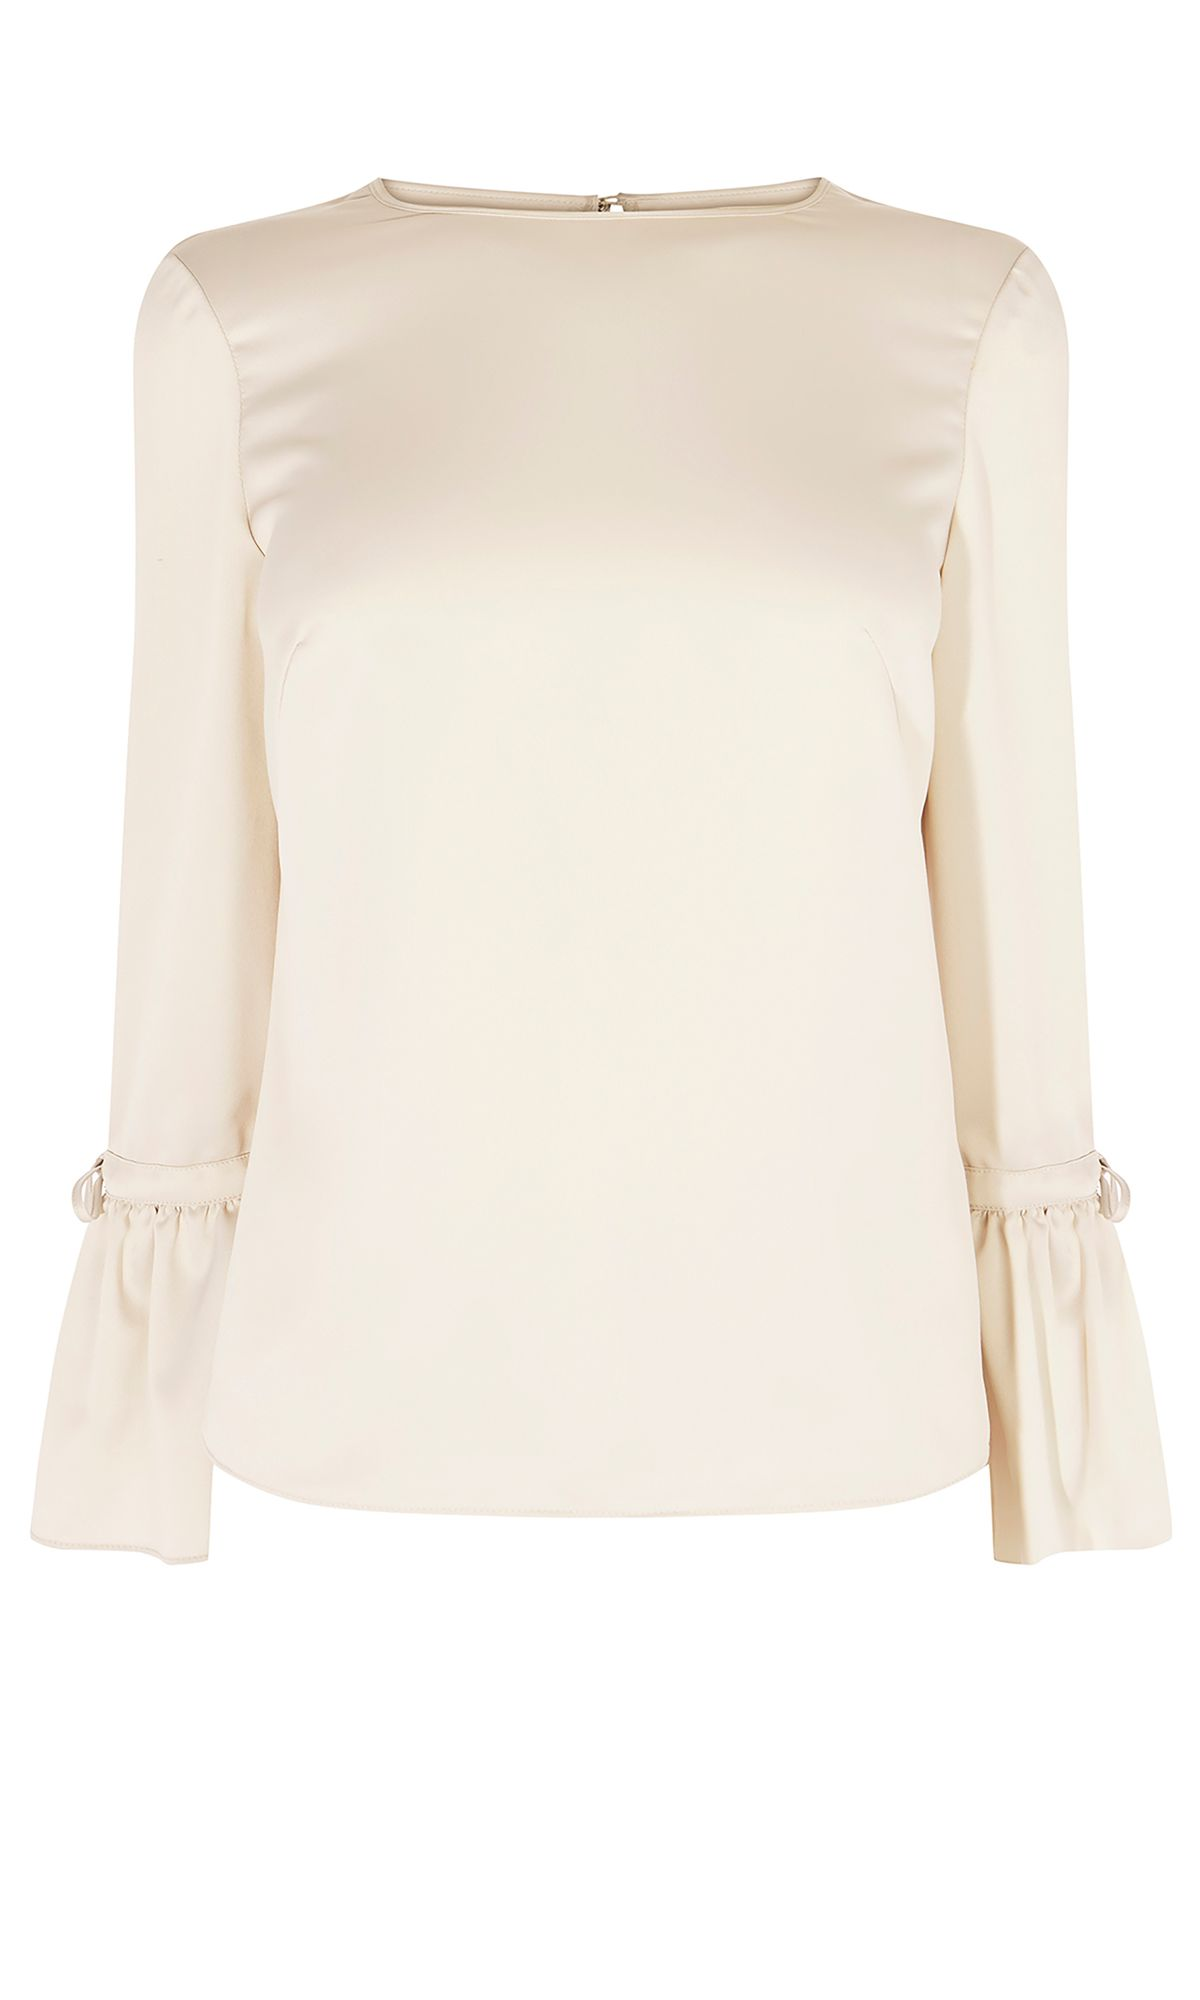 Karen Millen Satin Fluted Blouse, White